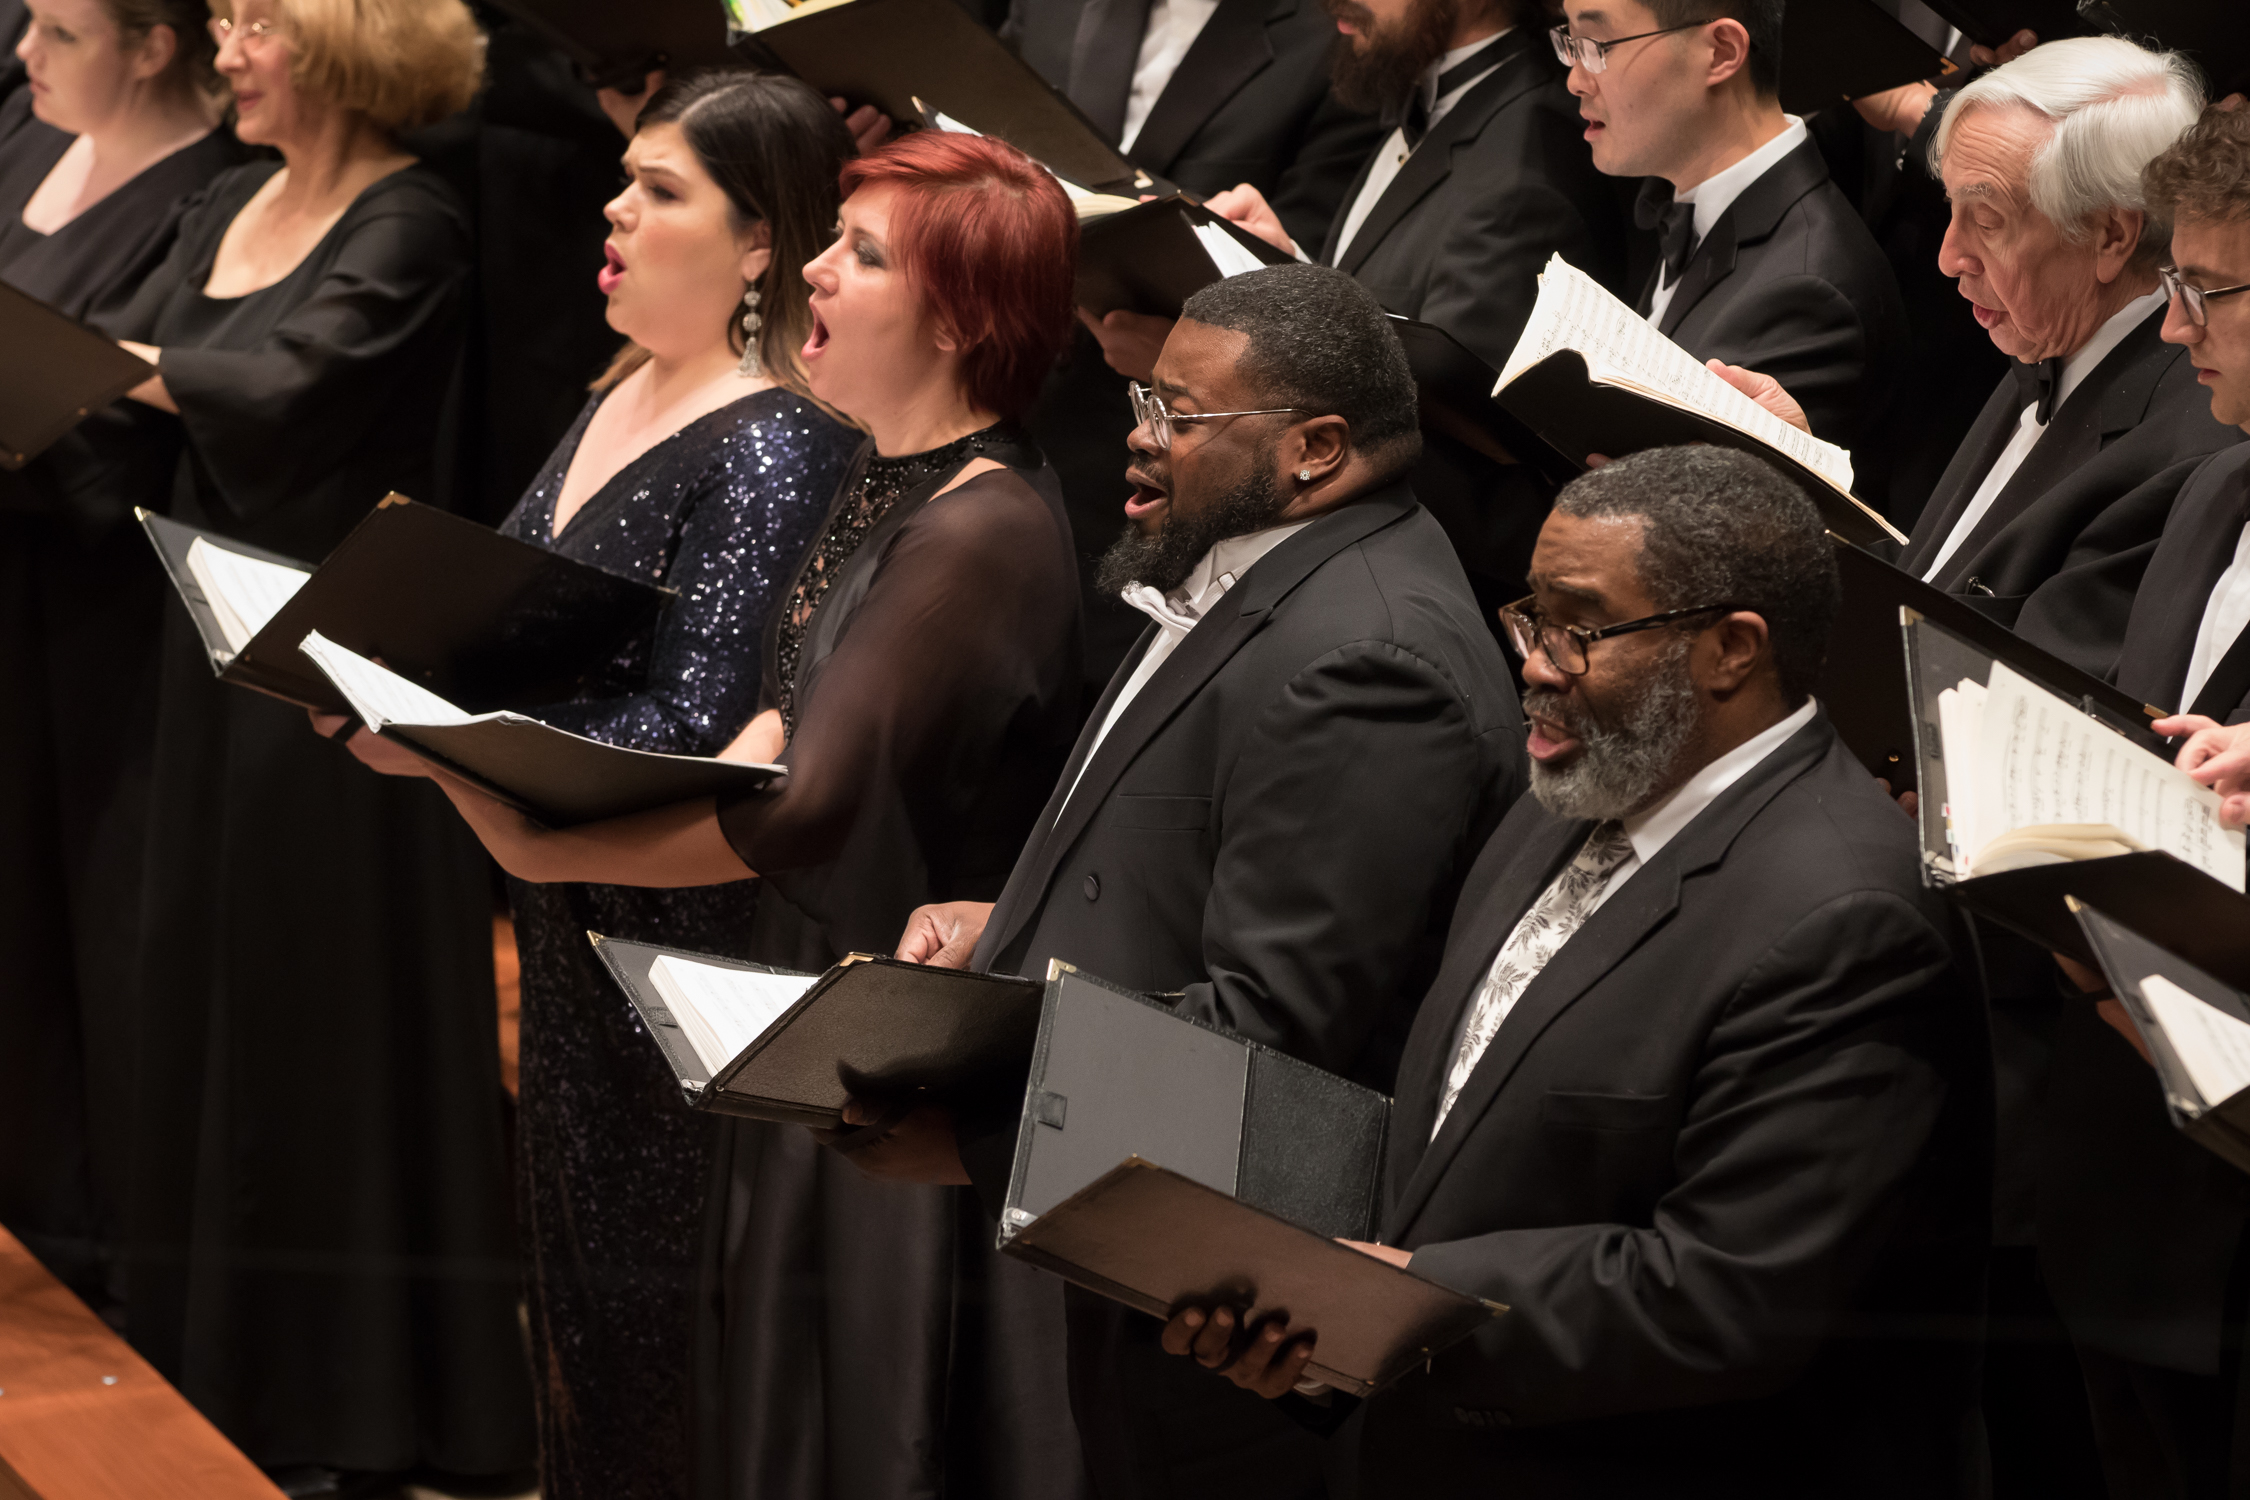 Soloists in front row, right to left, Eric Owens, Russell Thomas, Veronica Simeoni, and Leah Crocetto. Photo by Scott Suchman and courtesy of the National Symphony Orchestra.